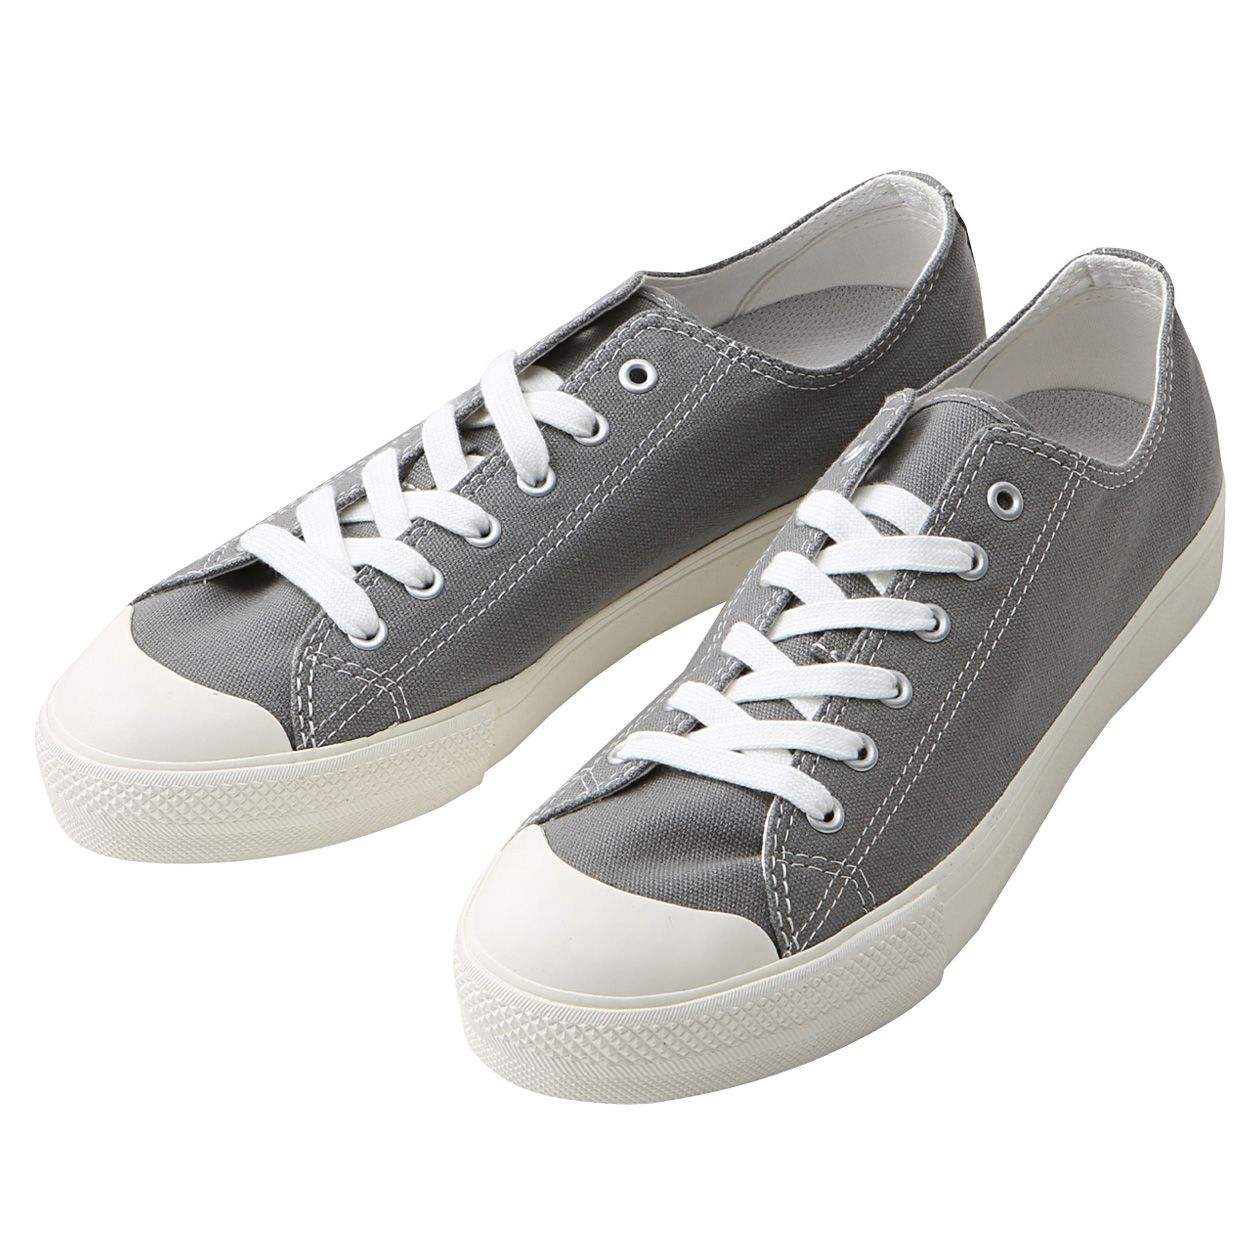 Water-repellent cotton sneakers (gray) by MUJI